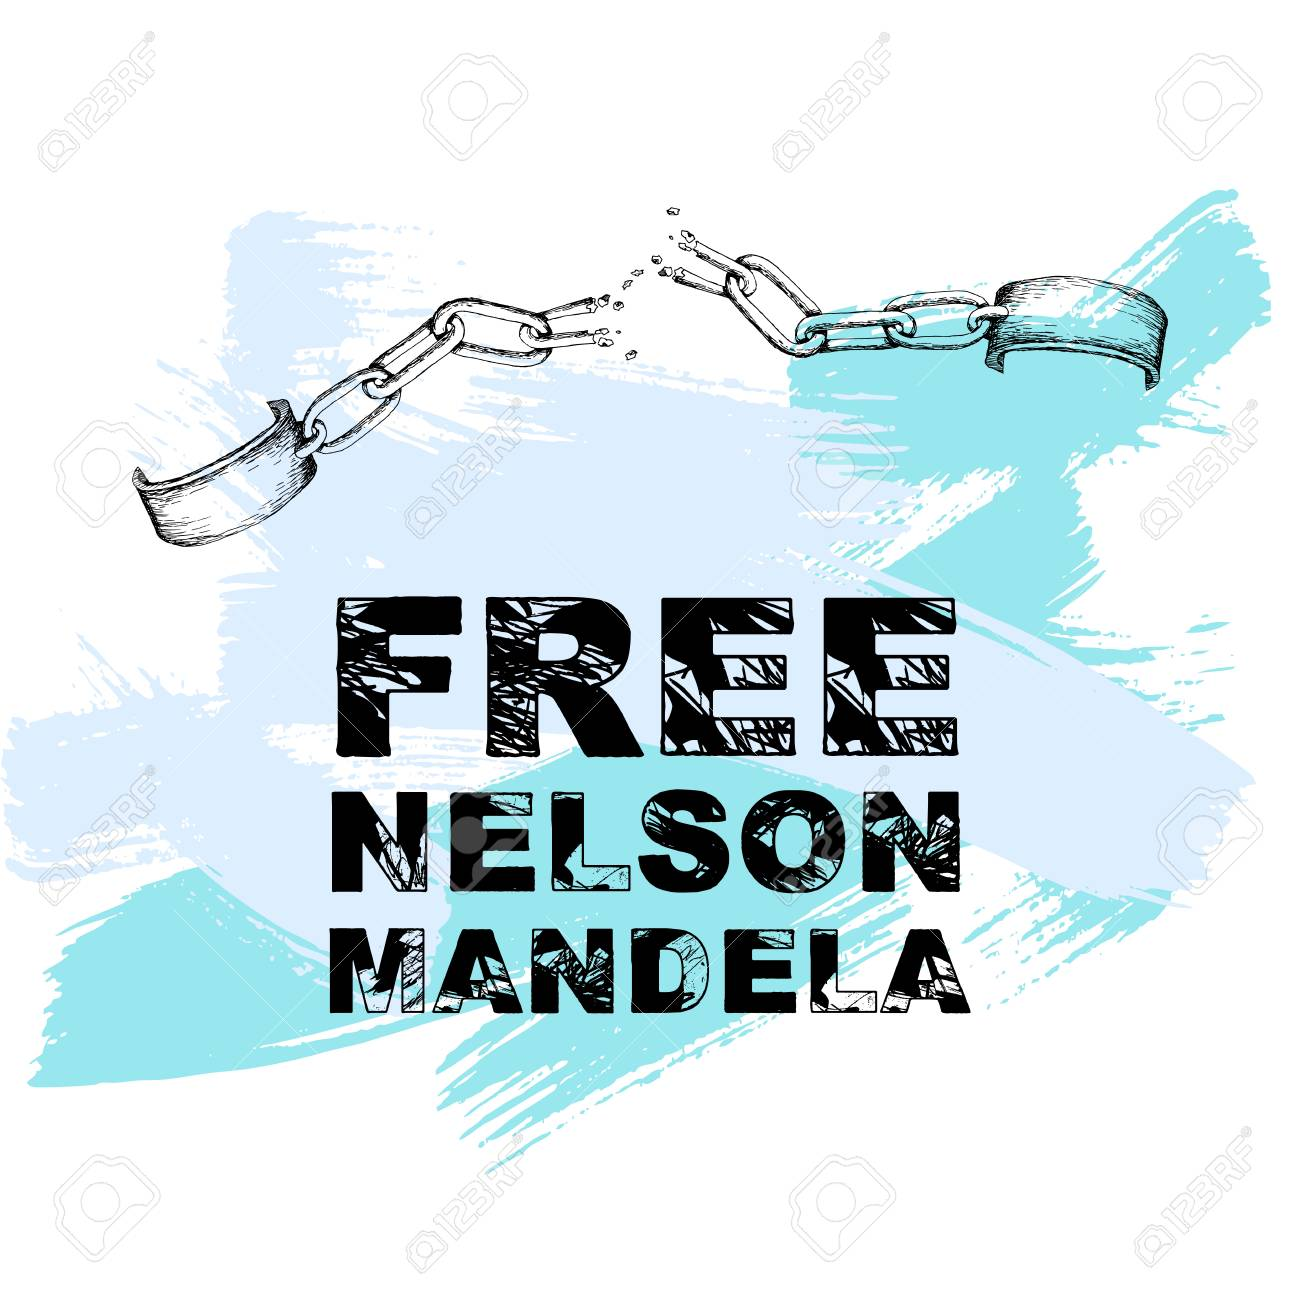 A Broken Chain And Shackles The Inscription Freedom Of Nelson